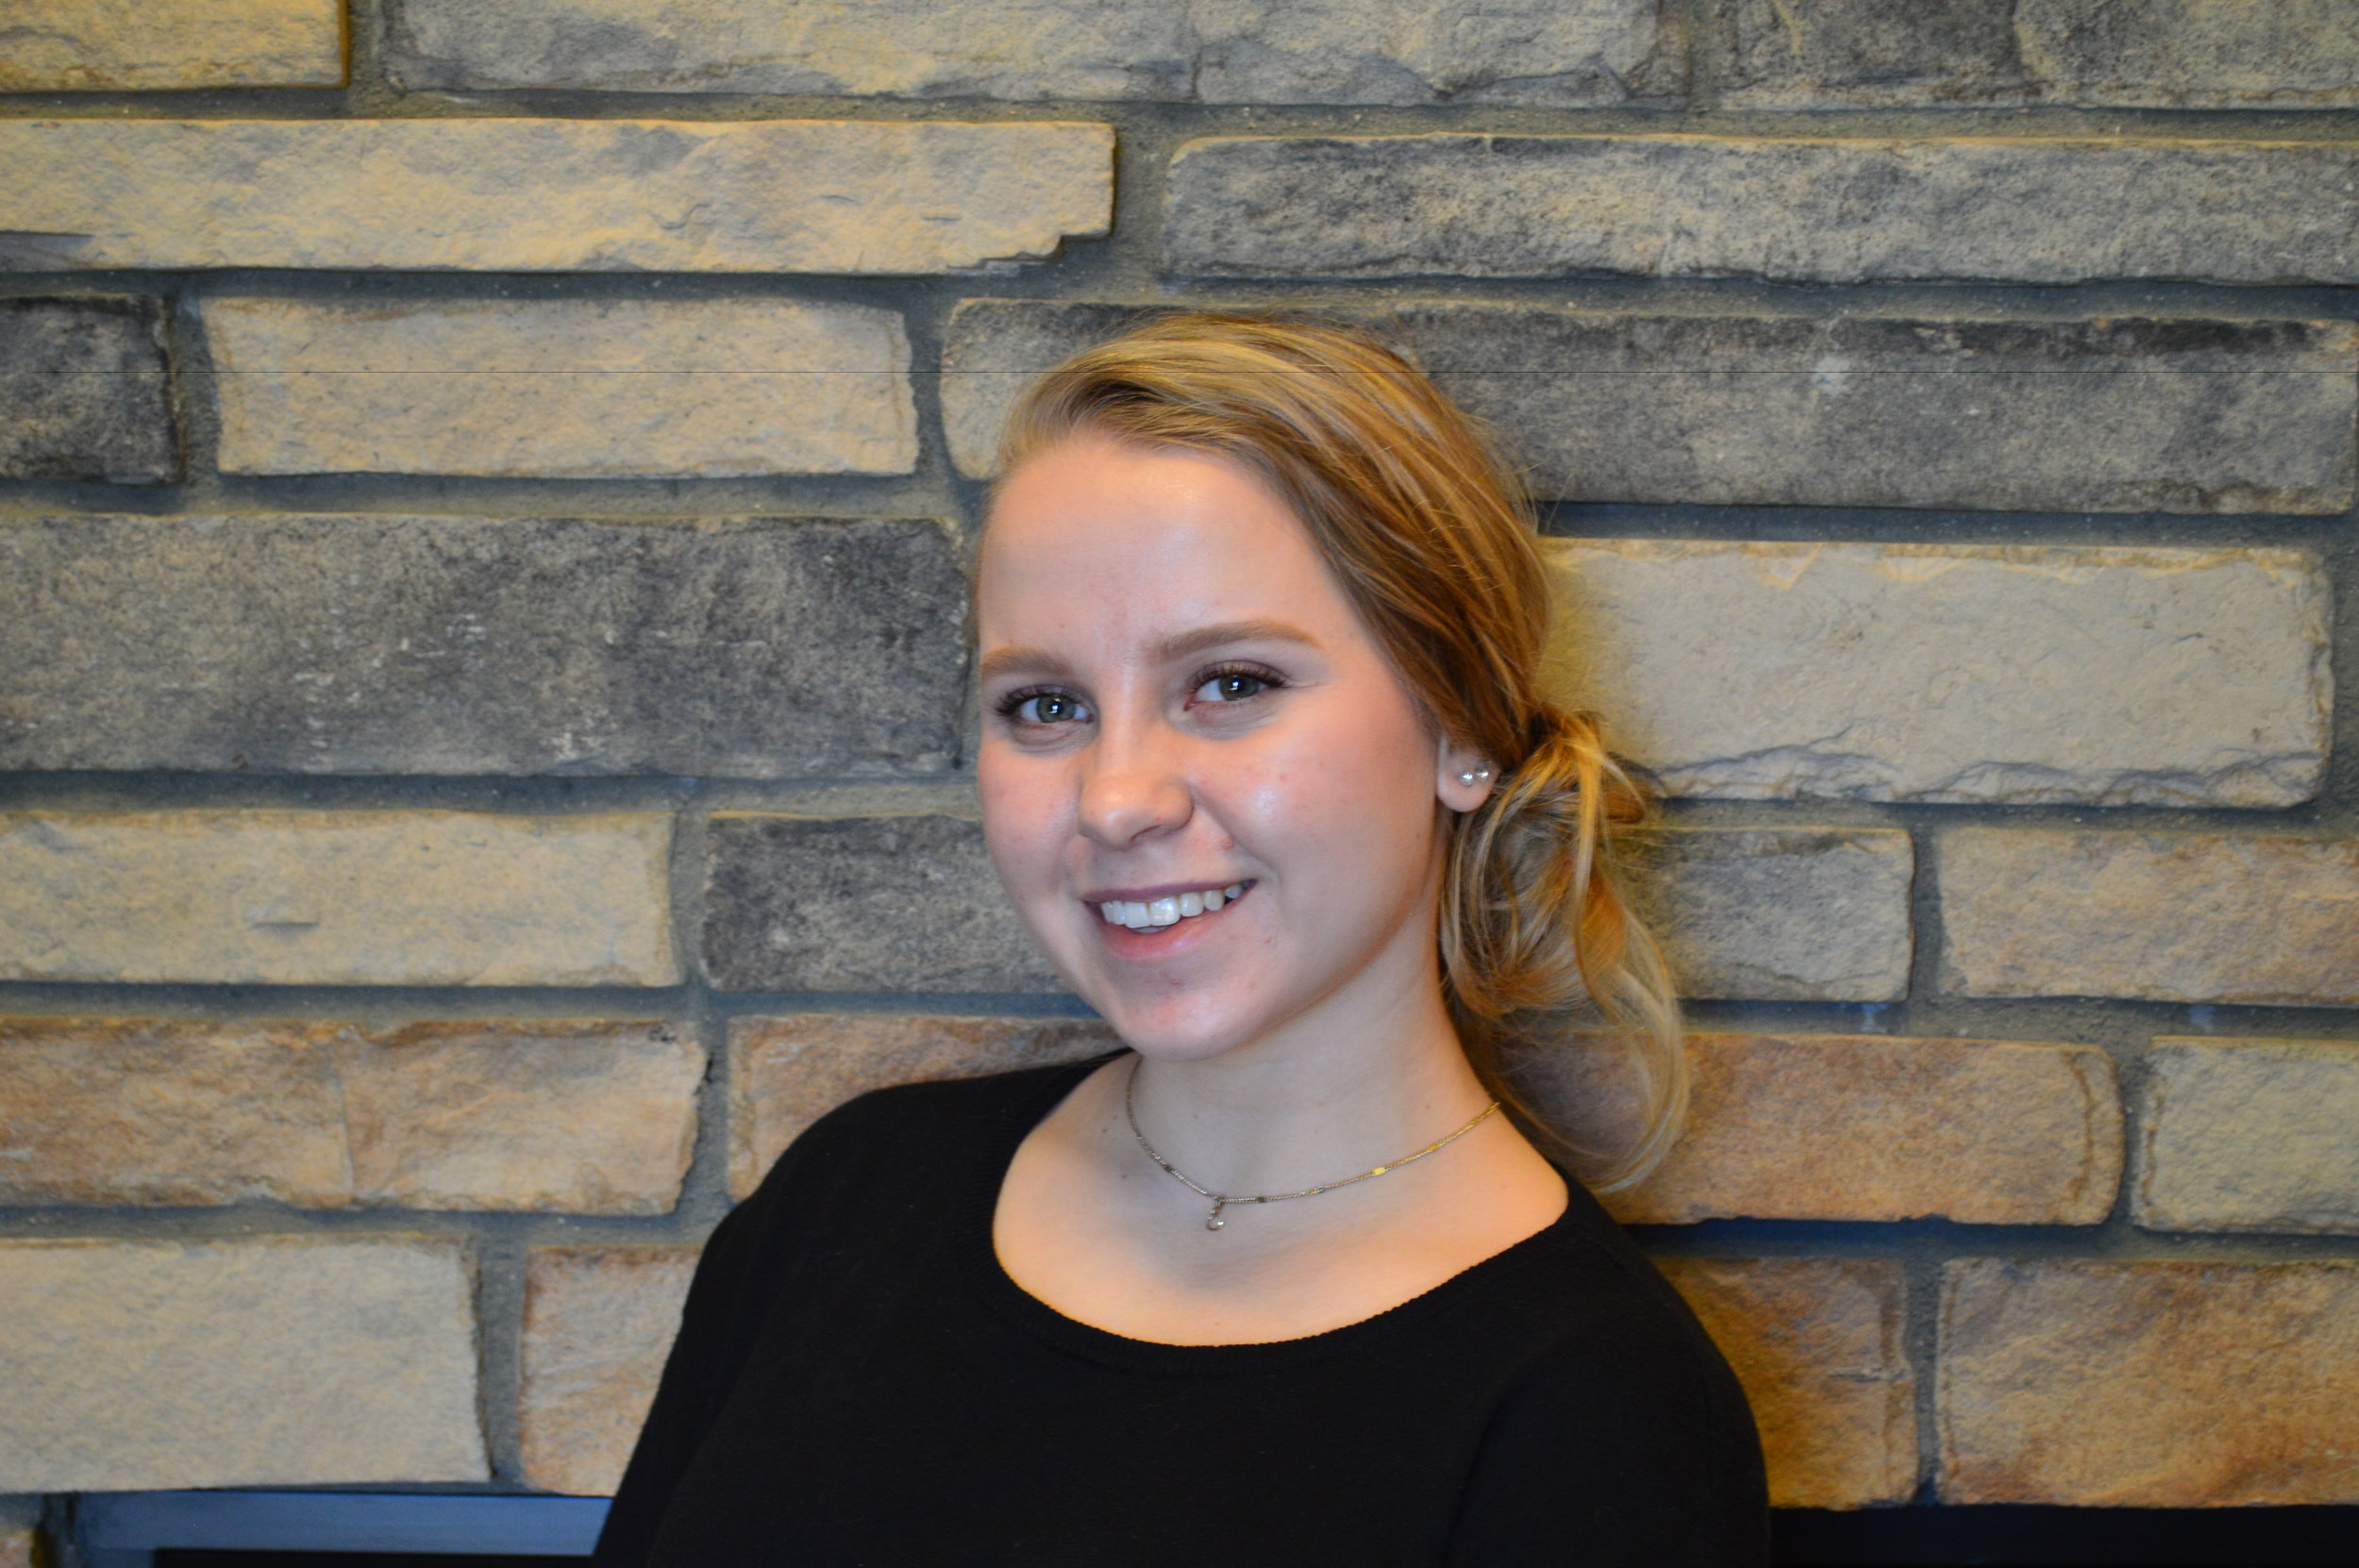 Emma Bearden - ReceptionistEmma joined RMA in 2018. She is a junior at Windsor High School. She is on the WHS Poms Team, and plays violin in the WHS Symphony Orchestra. When she graduates, she wants to pursue a degree in Biological Engineering. Emma's favorite thing about working at RMA is seeing people leave our office with happiness, confidence and a glow!